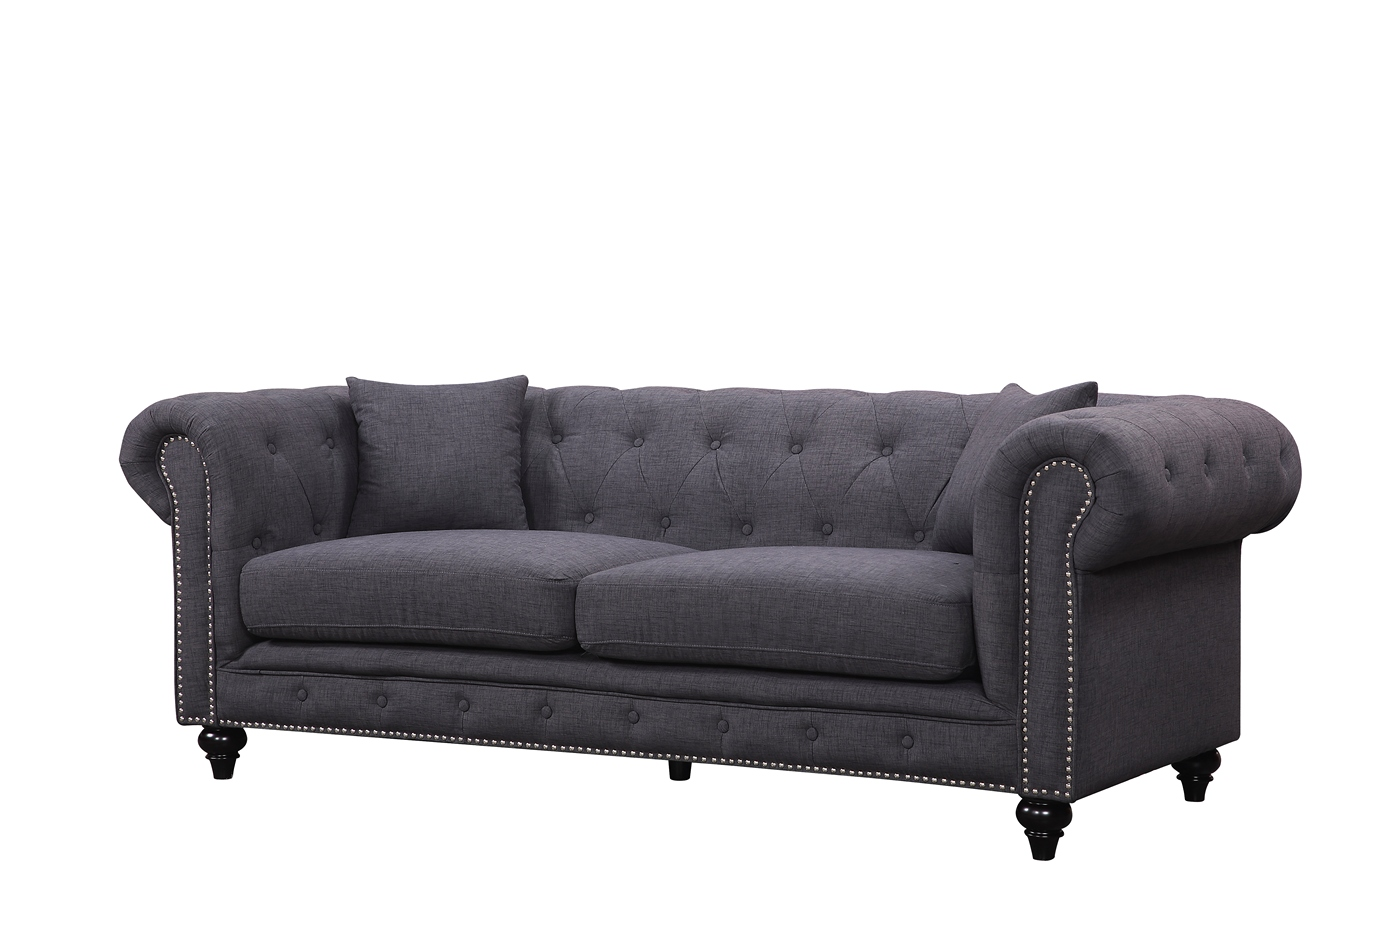 kristopher chesterfield modern grey linen tufted sofa loveseat. Black Bedroom Furniture Sets. Home Design Ideas